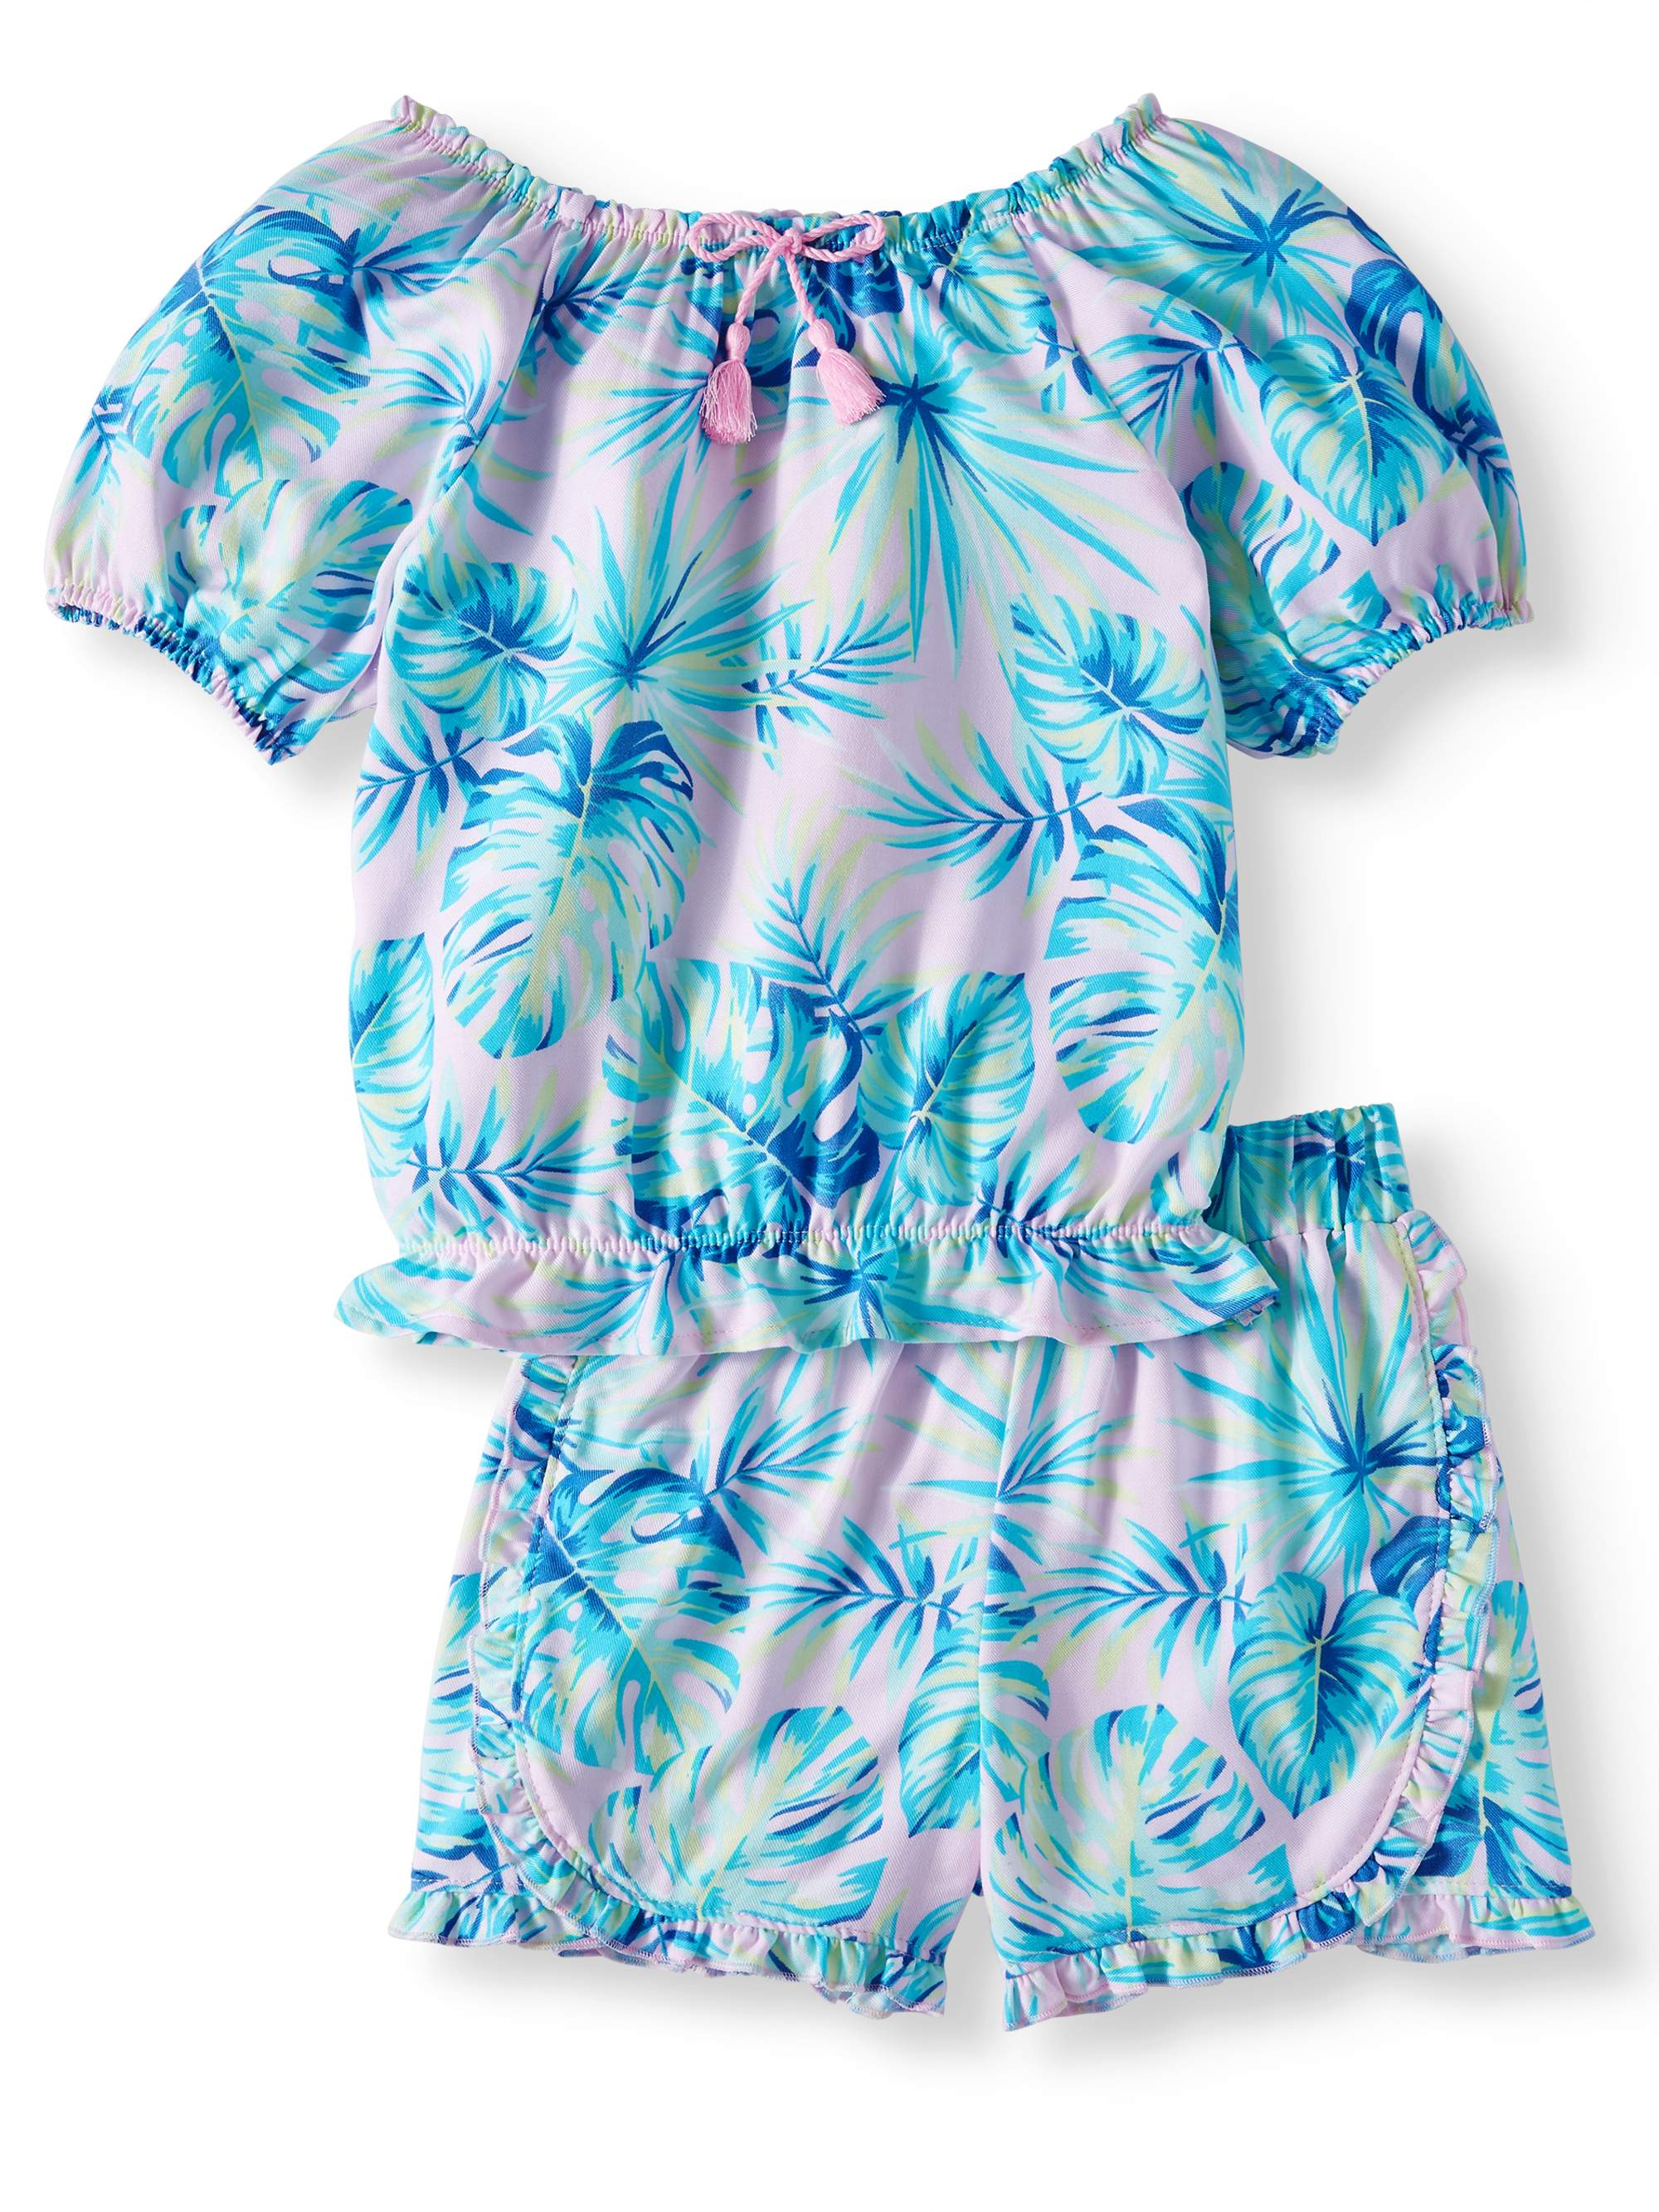 Printed Top with Cinched Neckline and Hem; And Matching Ruffled Shorts, 2-Piece Outfit Set (Little Girls, Big Girls & Big Girls Plus)